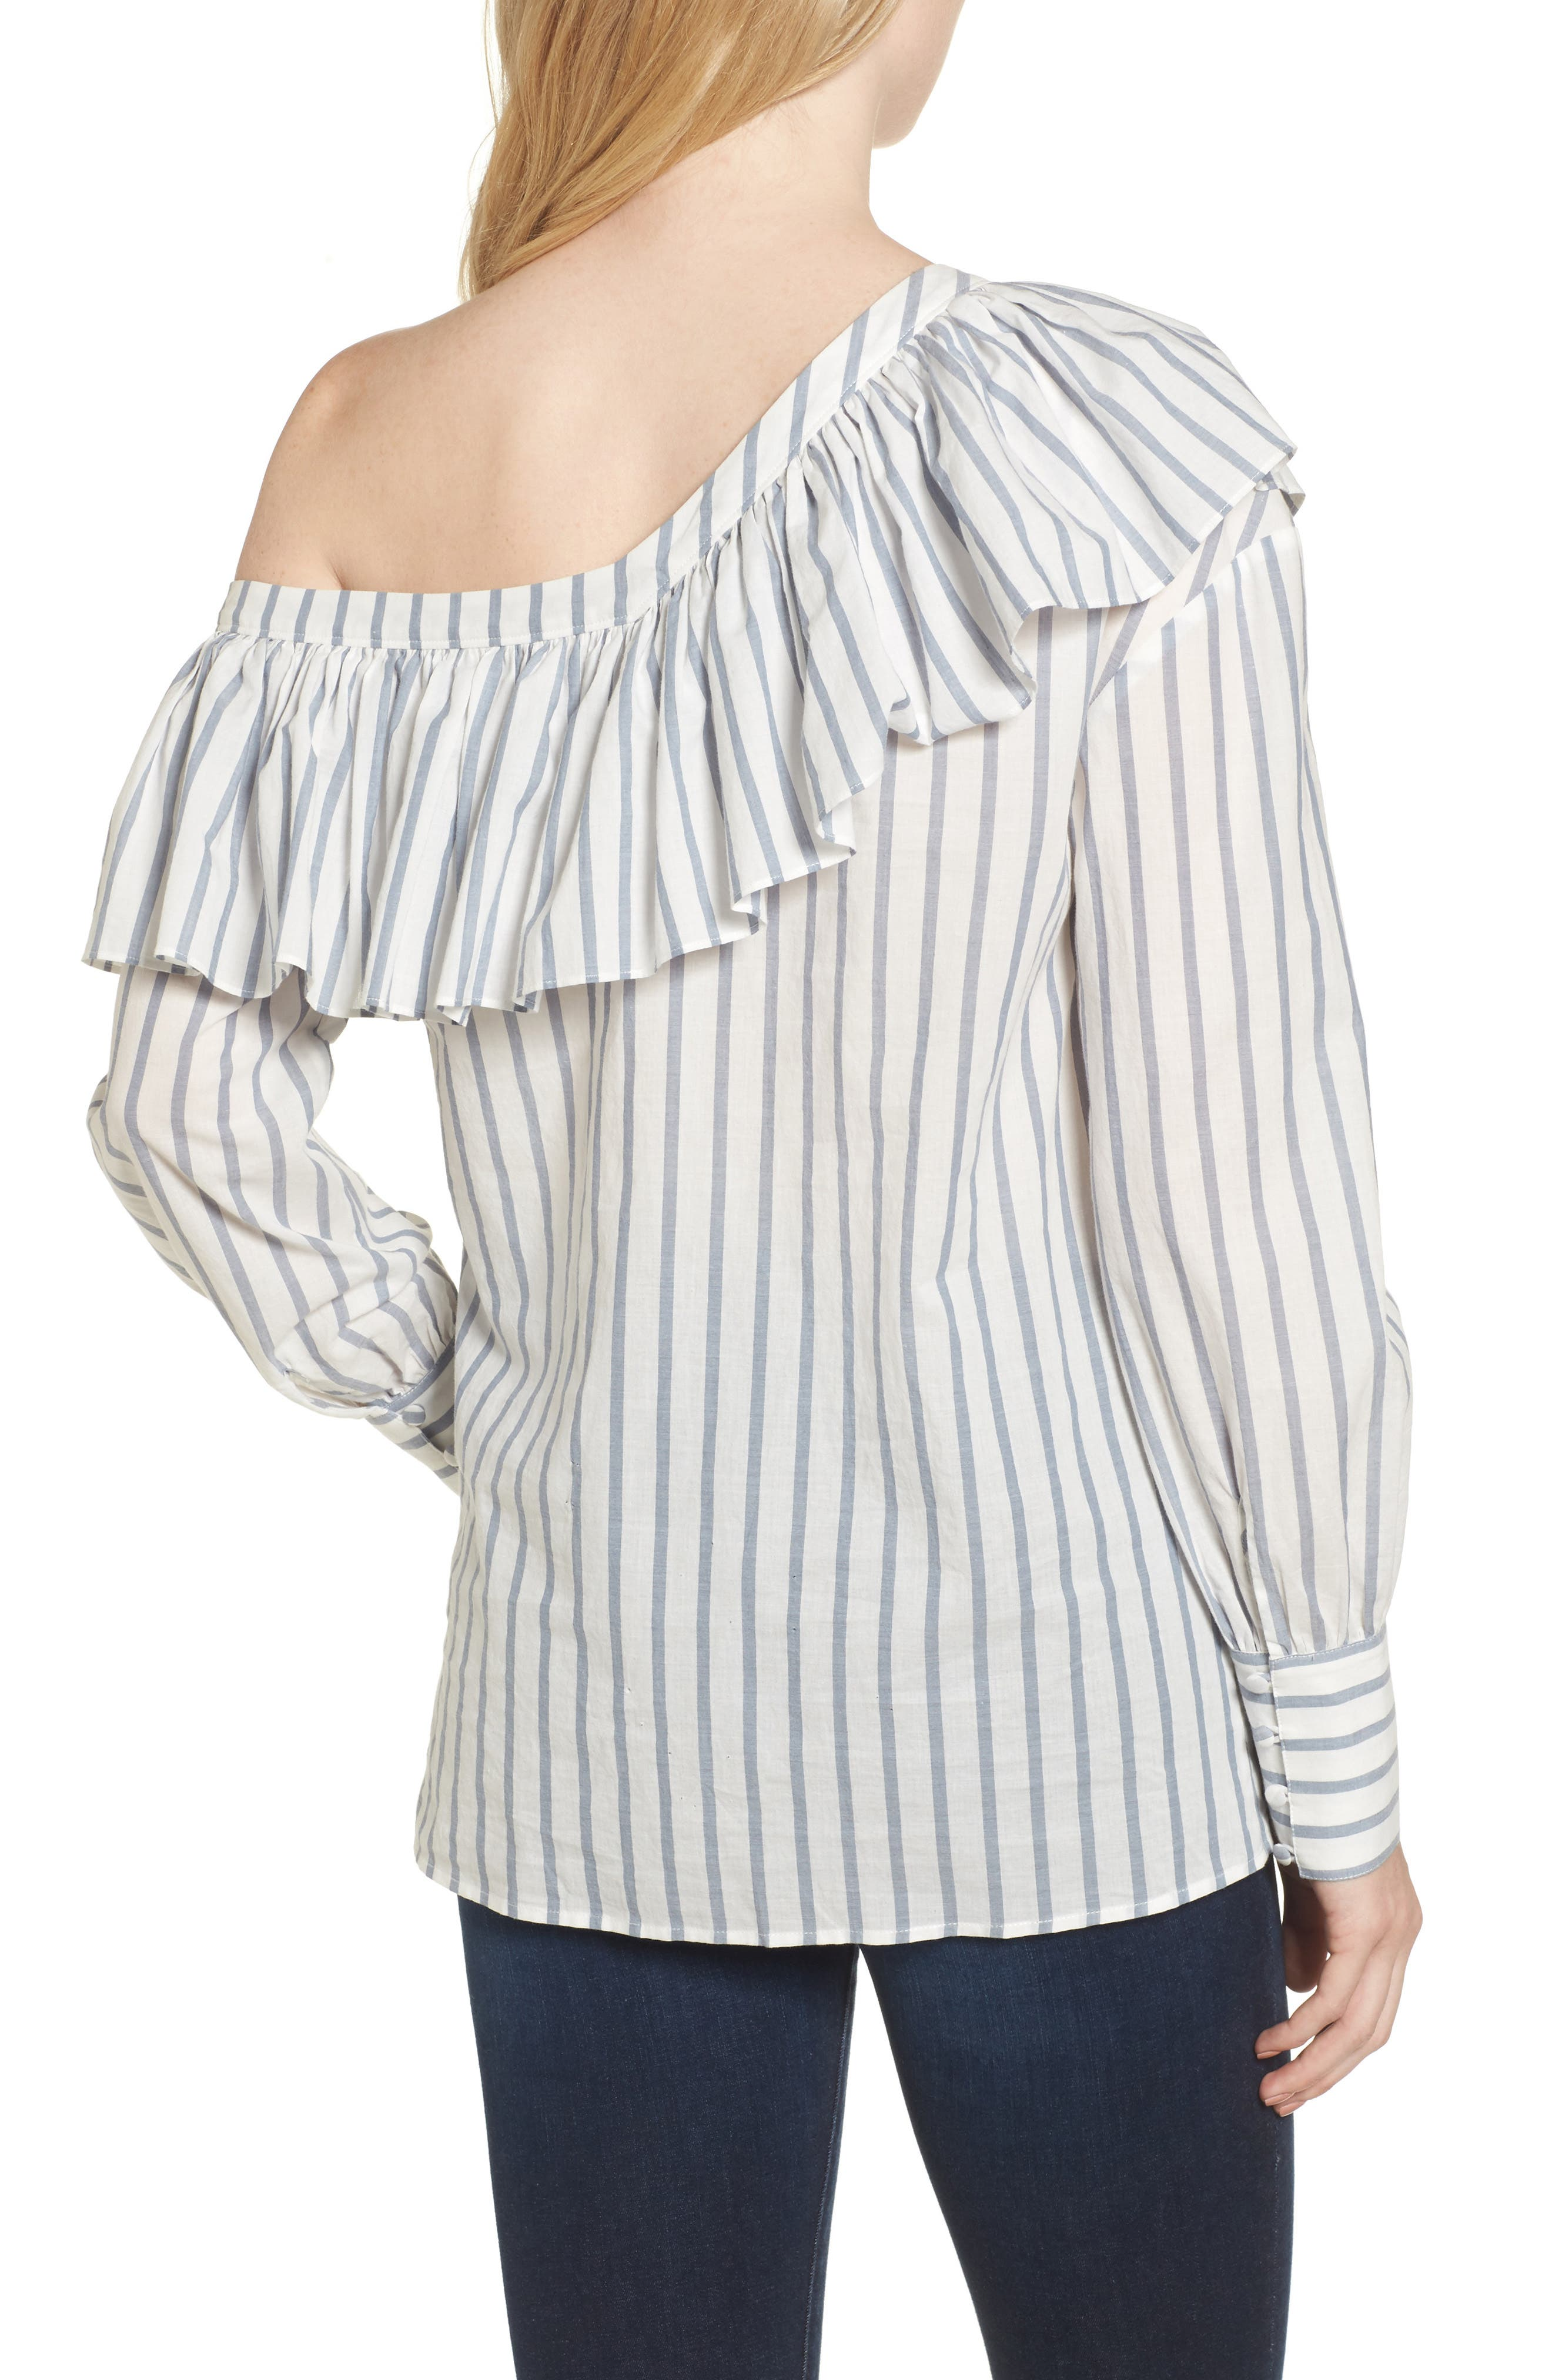 Halsey One-Shoulder Blouse,                             Alternate thumbnail 2, color,                             100